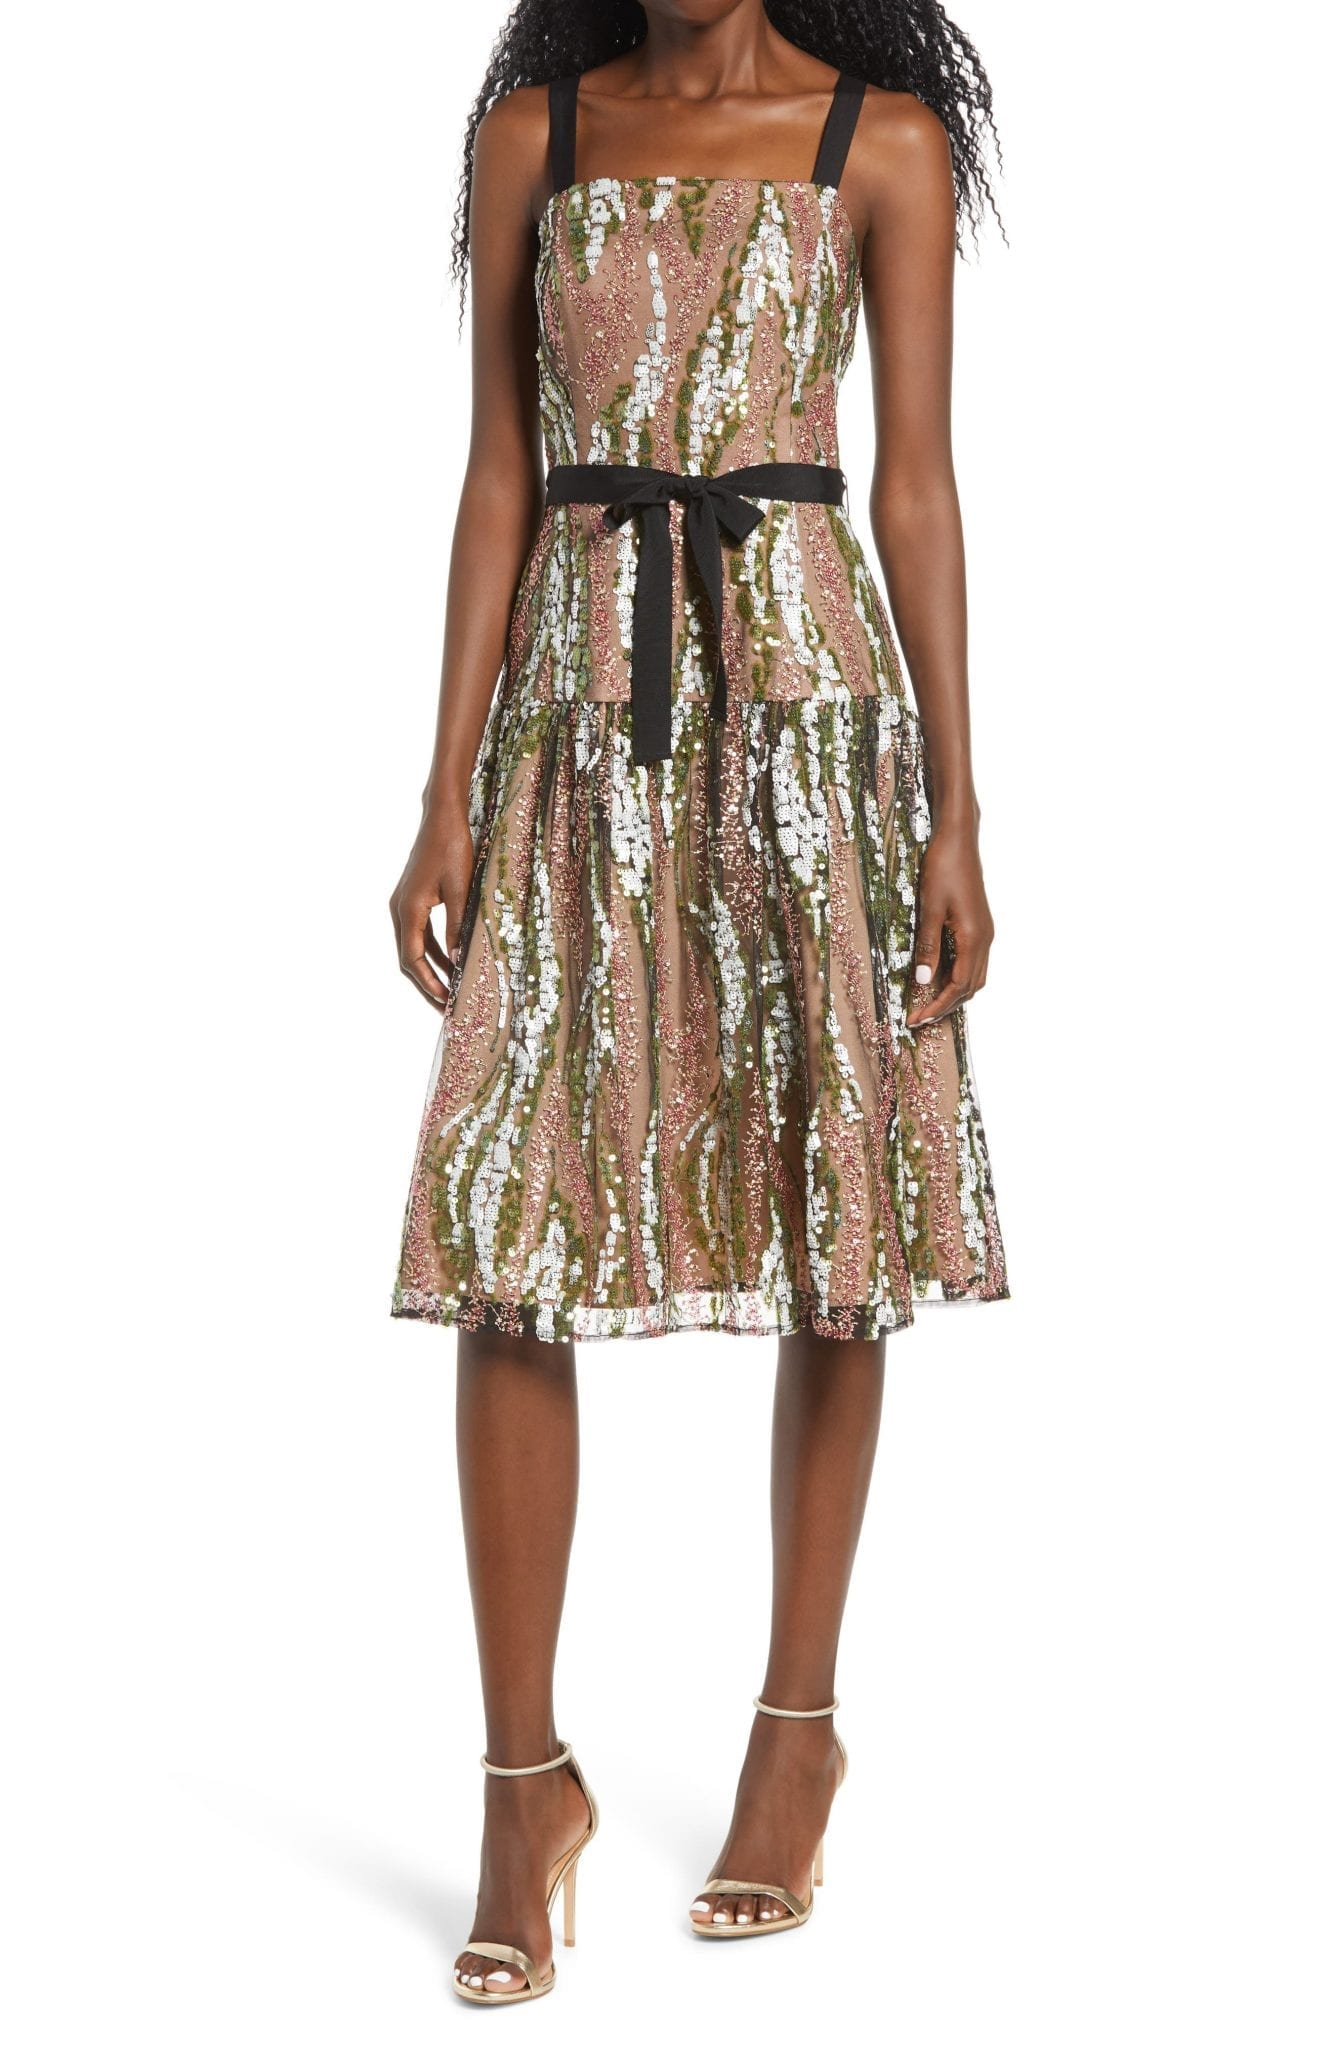 HARLYN Sequin Embroidered Cocktail Dress